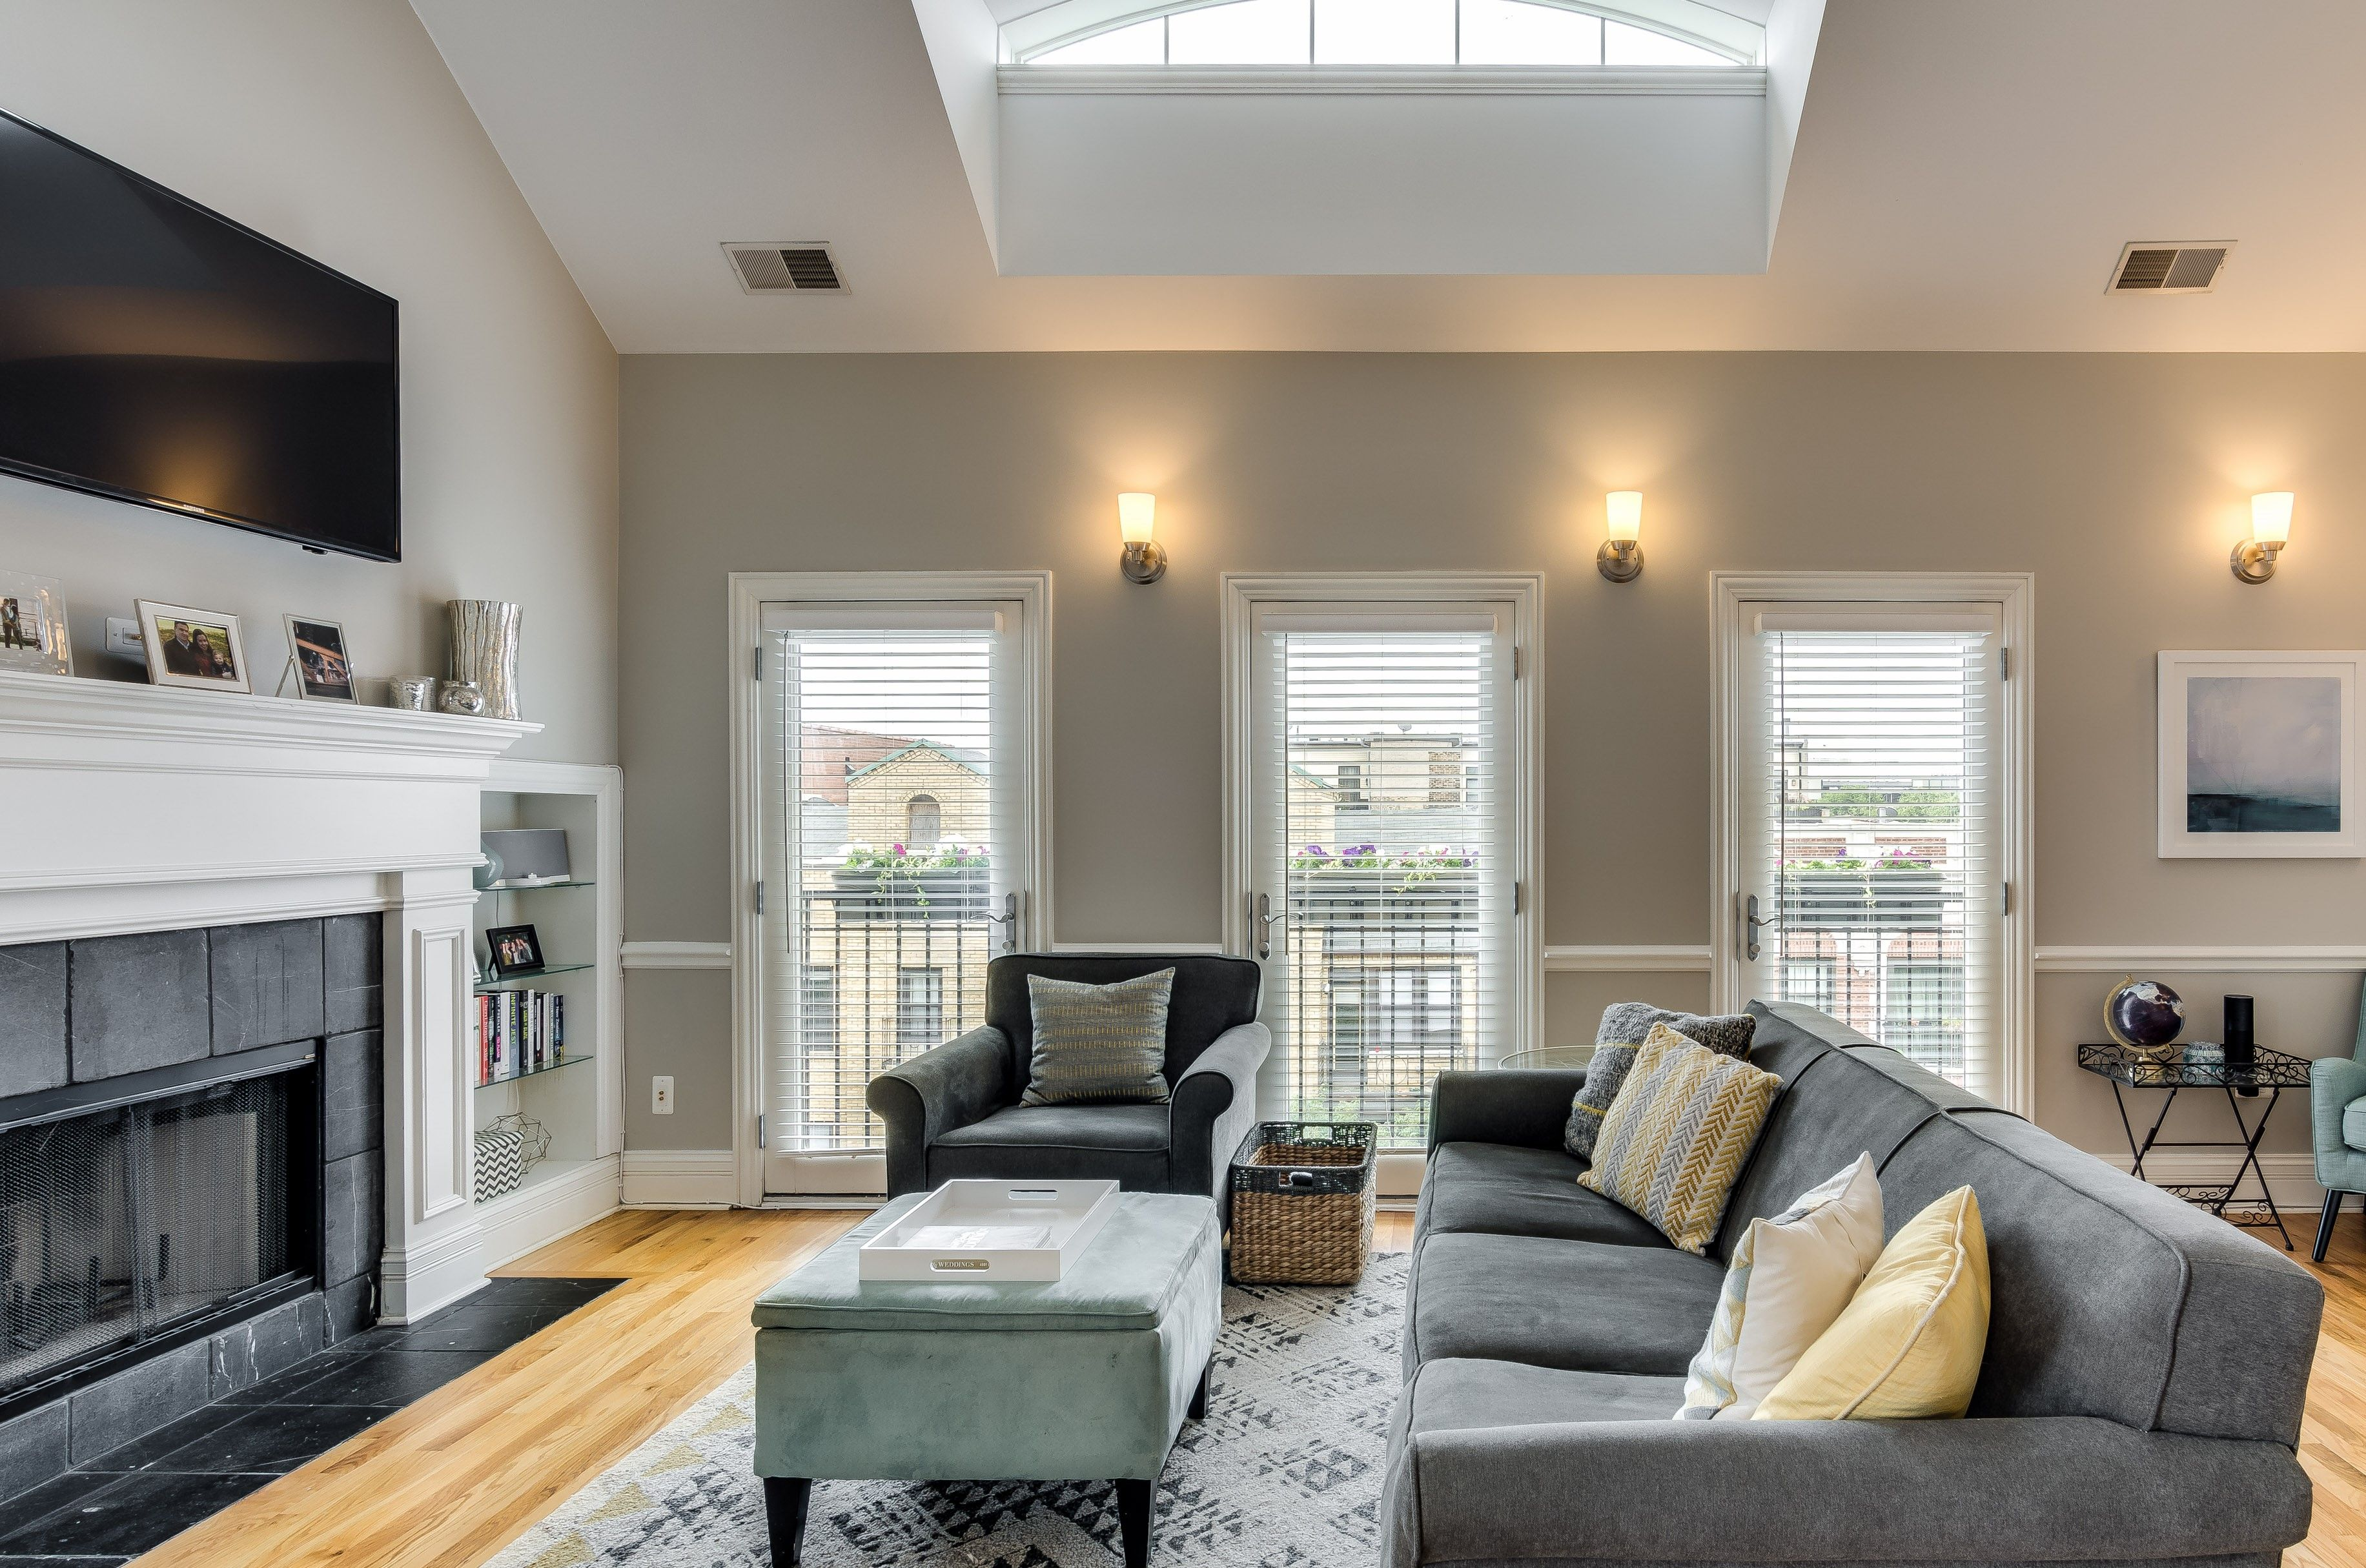 Vaulted Cathedral Ceilings With Skylights In Penthouse Apartment In Chicago Top Floor Apartment Apartment Interior Design Chicago Apartments For Rent Skylight